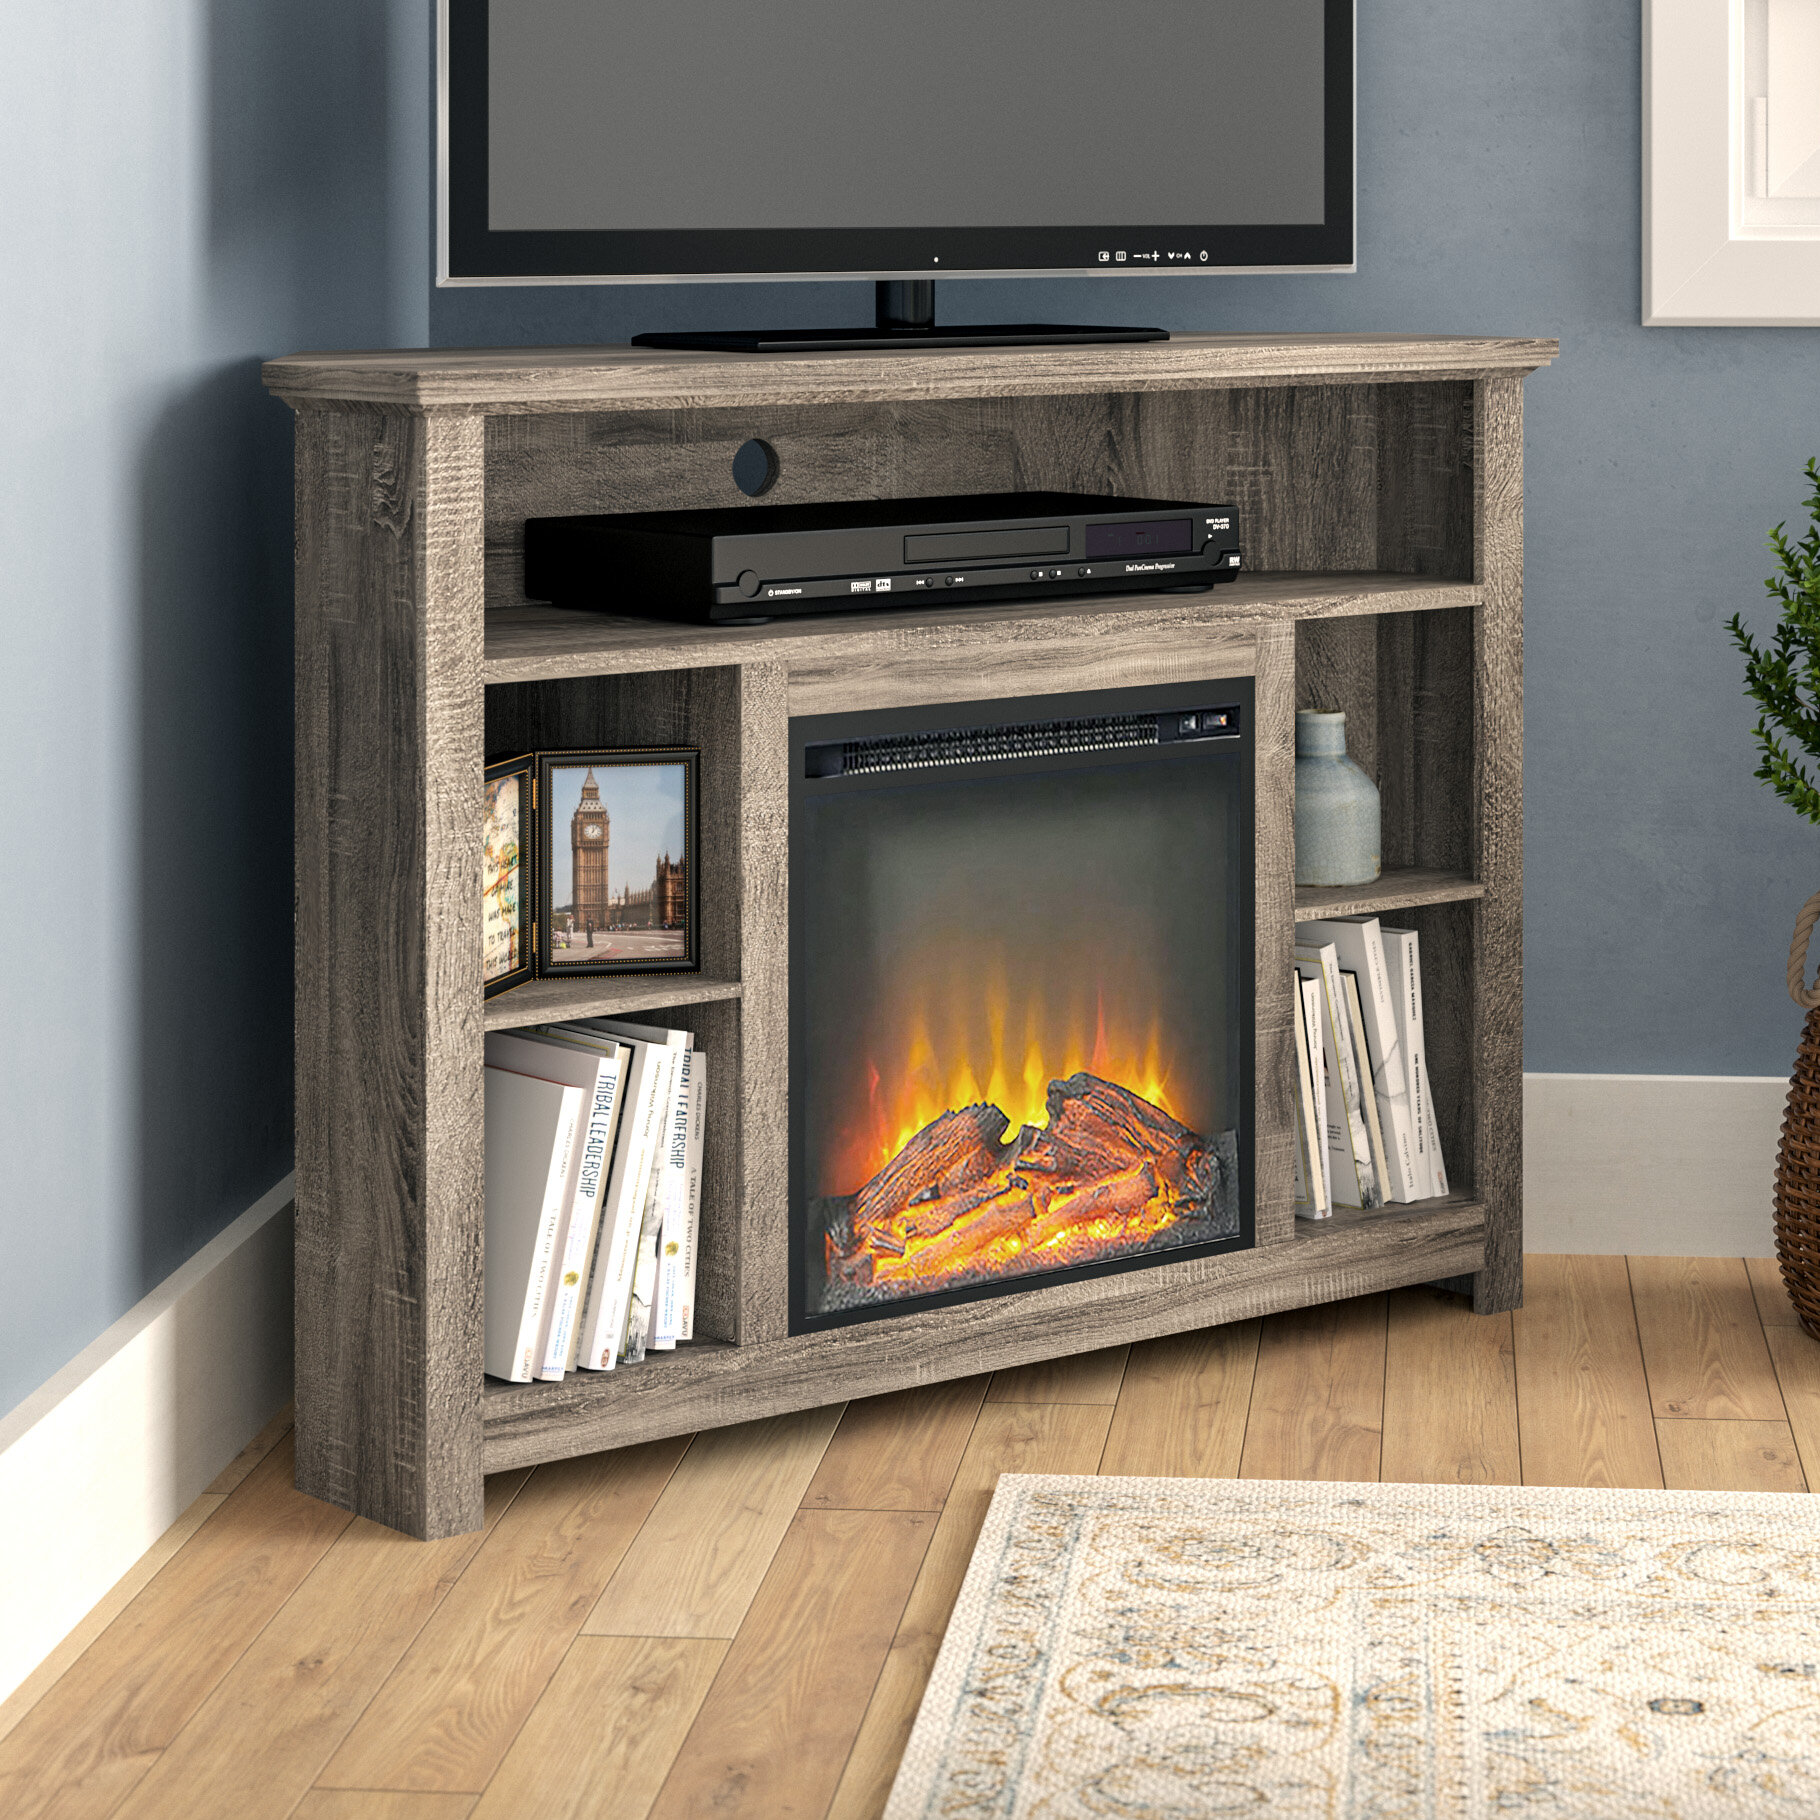 Swell Senecaville Corner Tv Stand For Tvs Up To 48 With Electric Fireplace Interior Design Ideas Gentotthenellocom